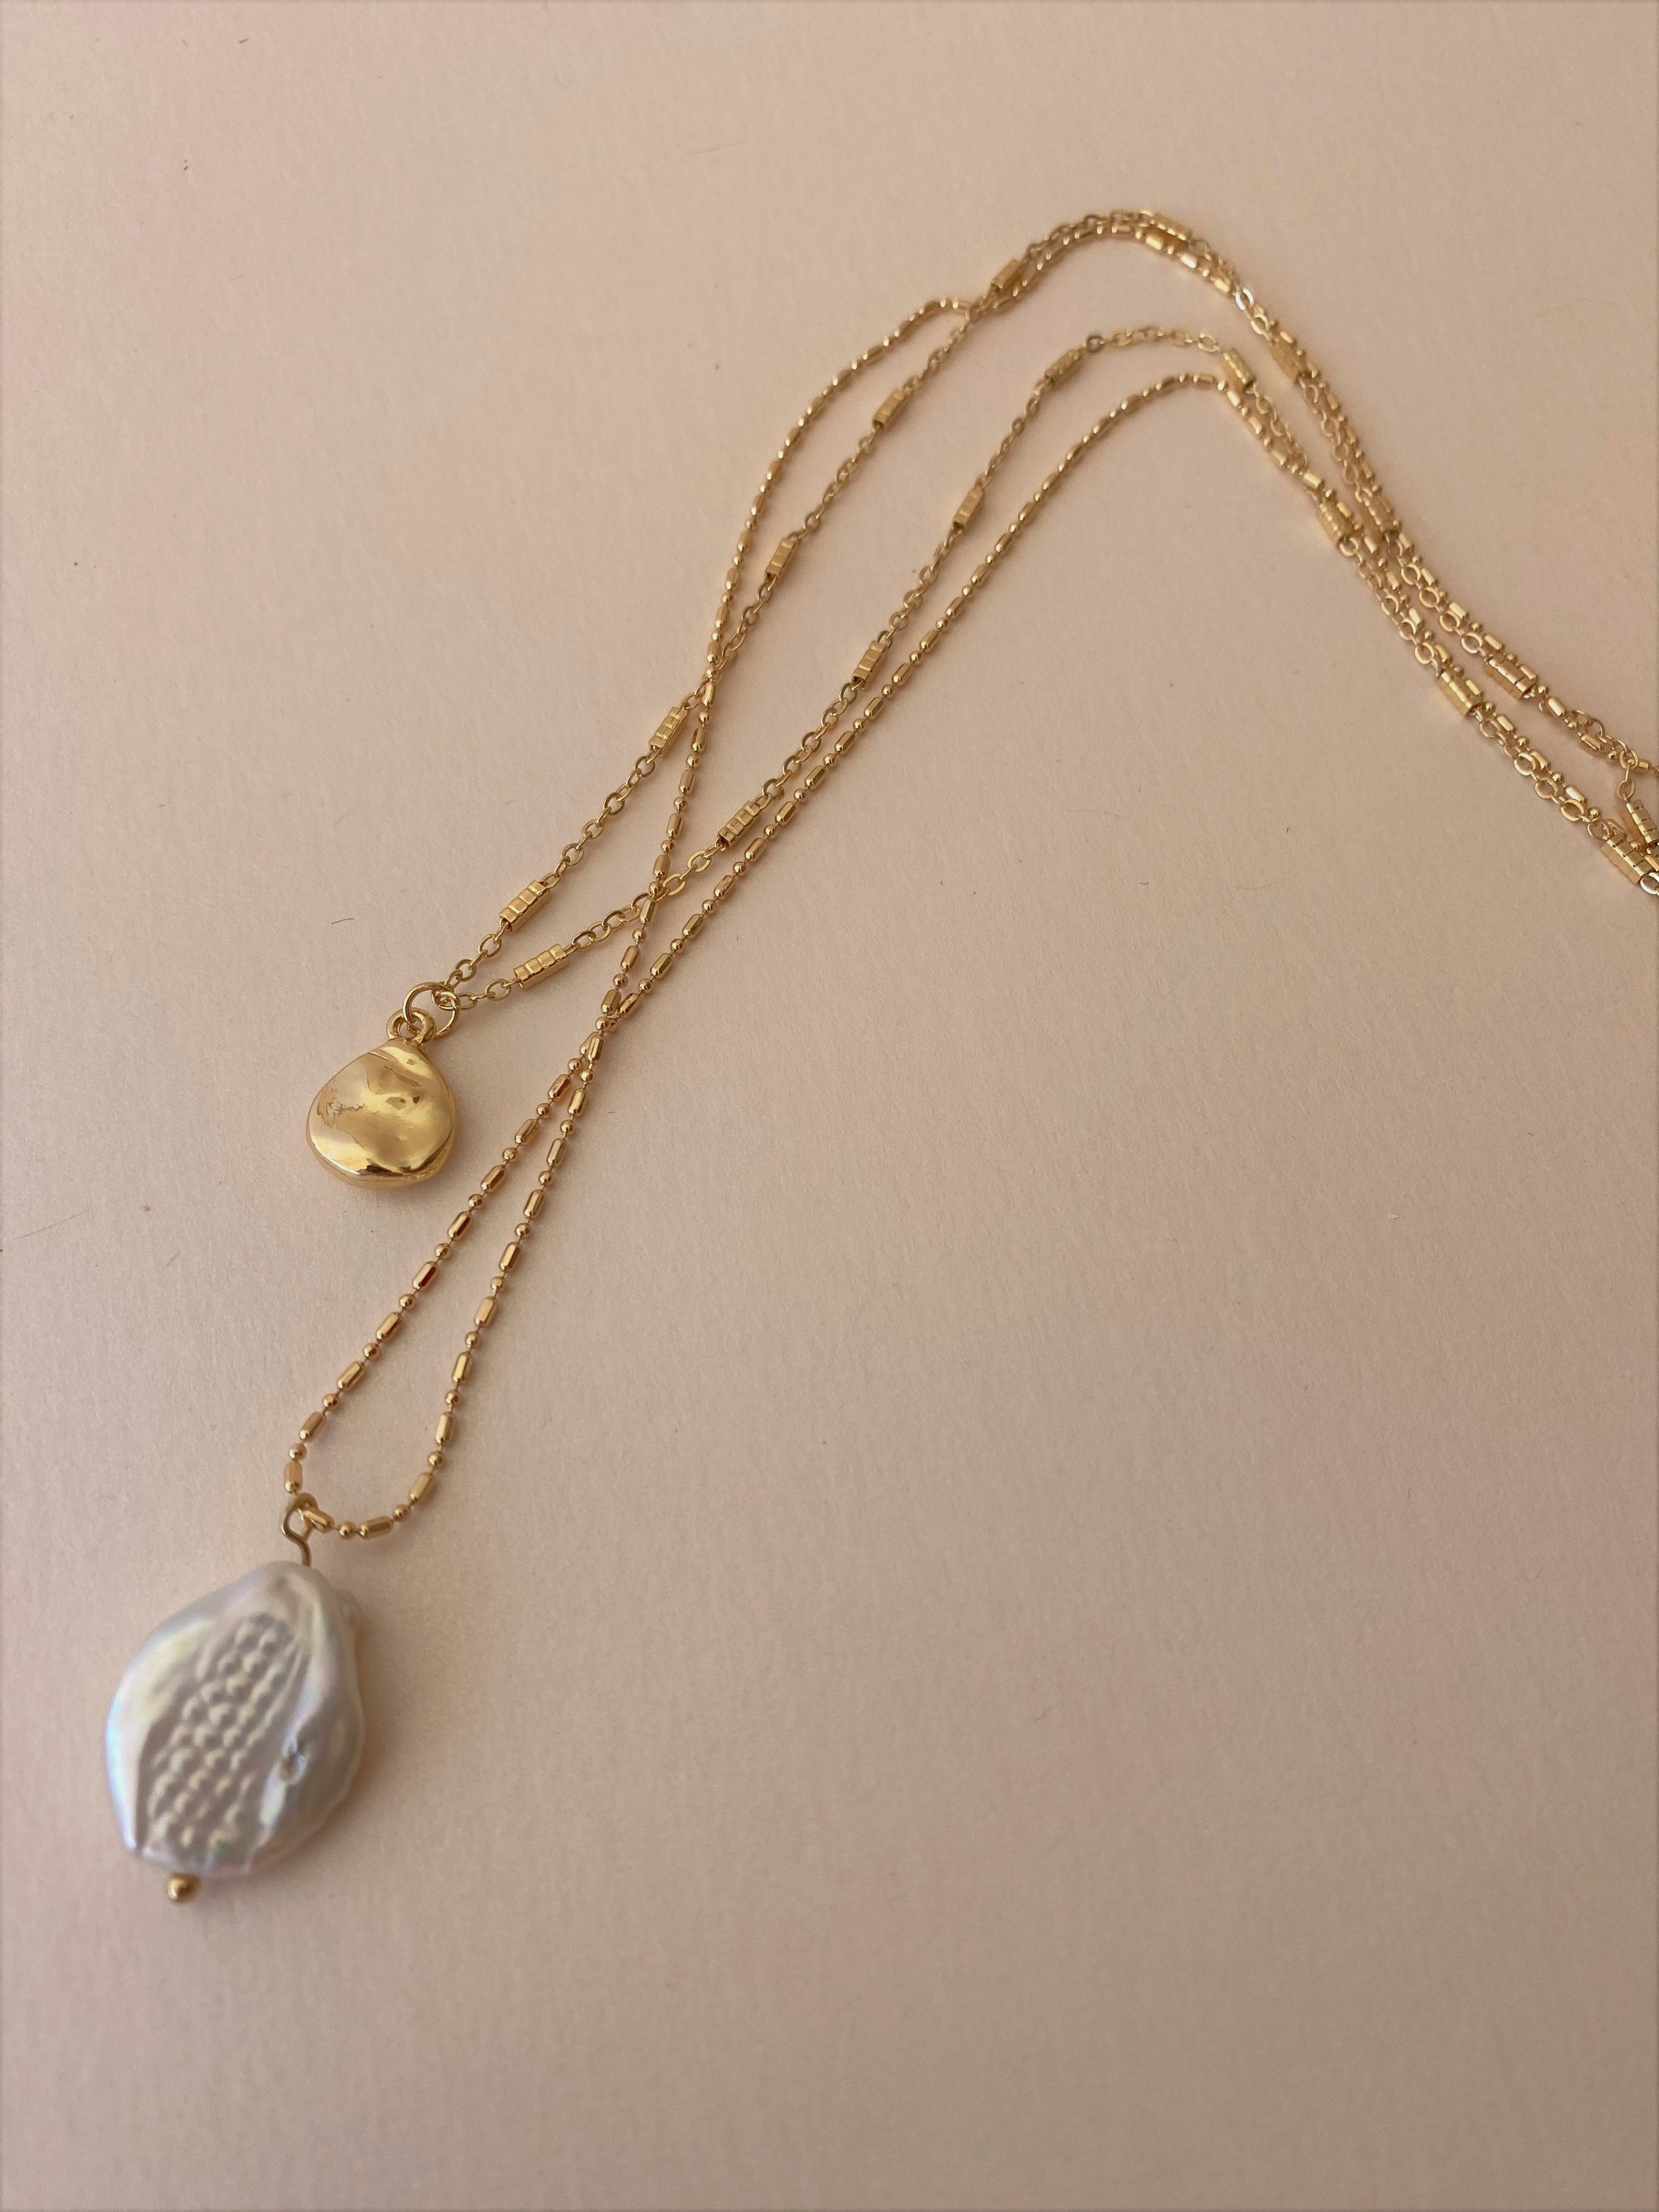 THE AMPHITRITE HAMMERED DISC AND PEARL NECKLACE